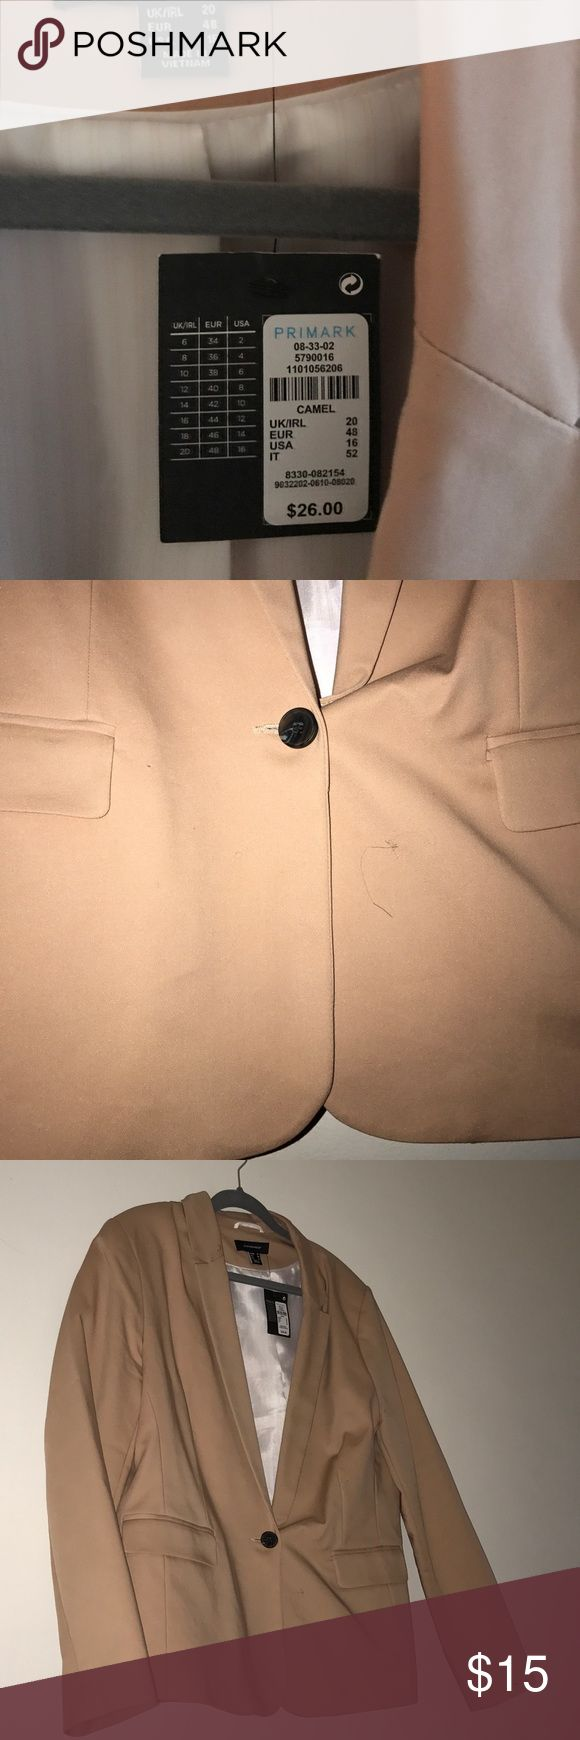 Blazer Brand new never worn tried to get true color in photo it's taupe with a pinkish tinge if that makes sense ? primark Jackets & Coats Blazers